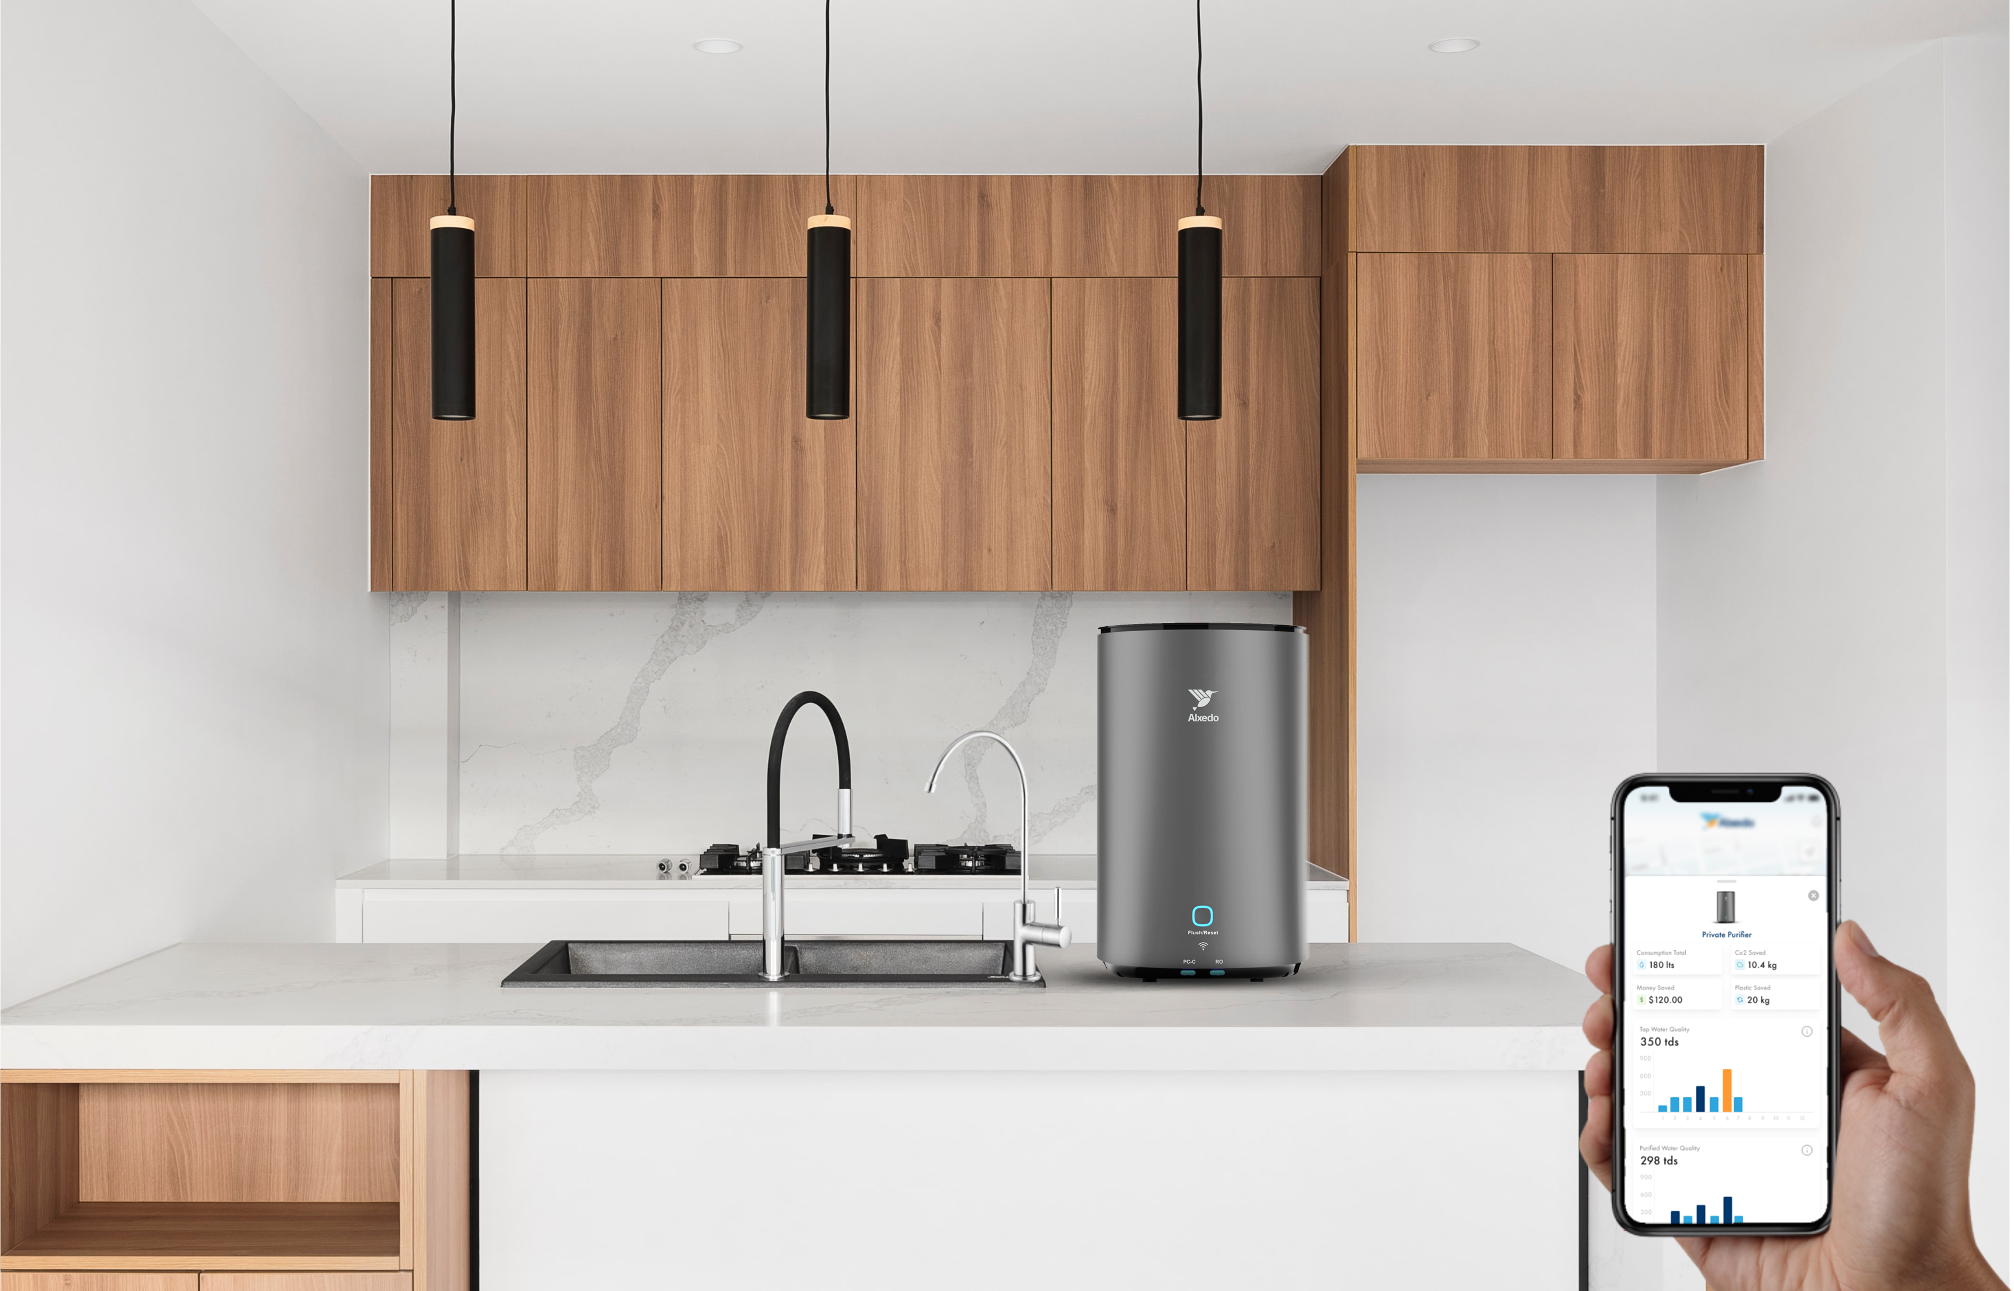 Holding a phone in the right hand with the Alxedo App opened, showing Water consumption statistic. An Alxedo Purifier is placed in a kitchen in the Background